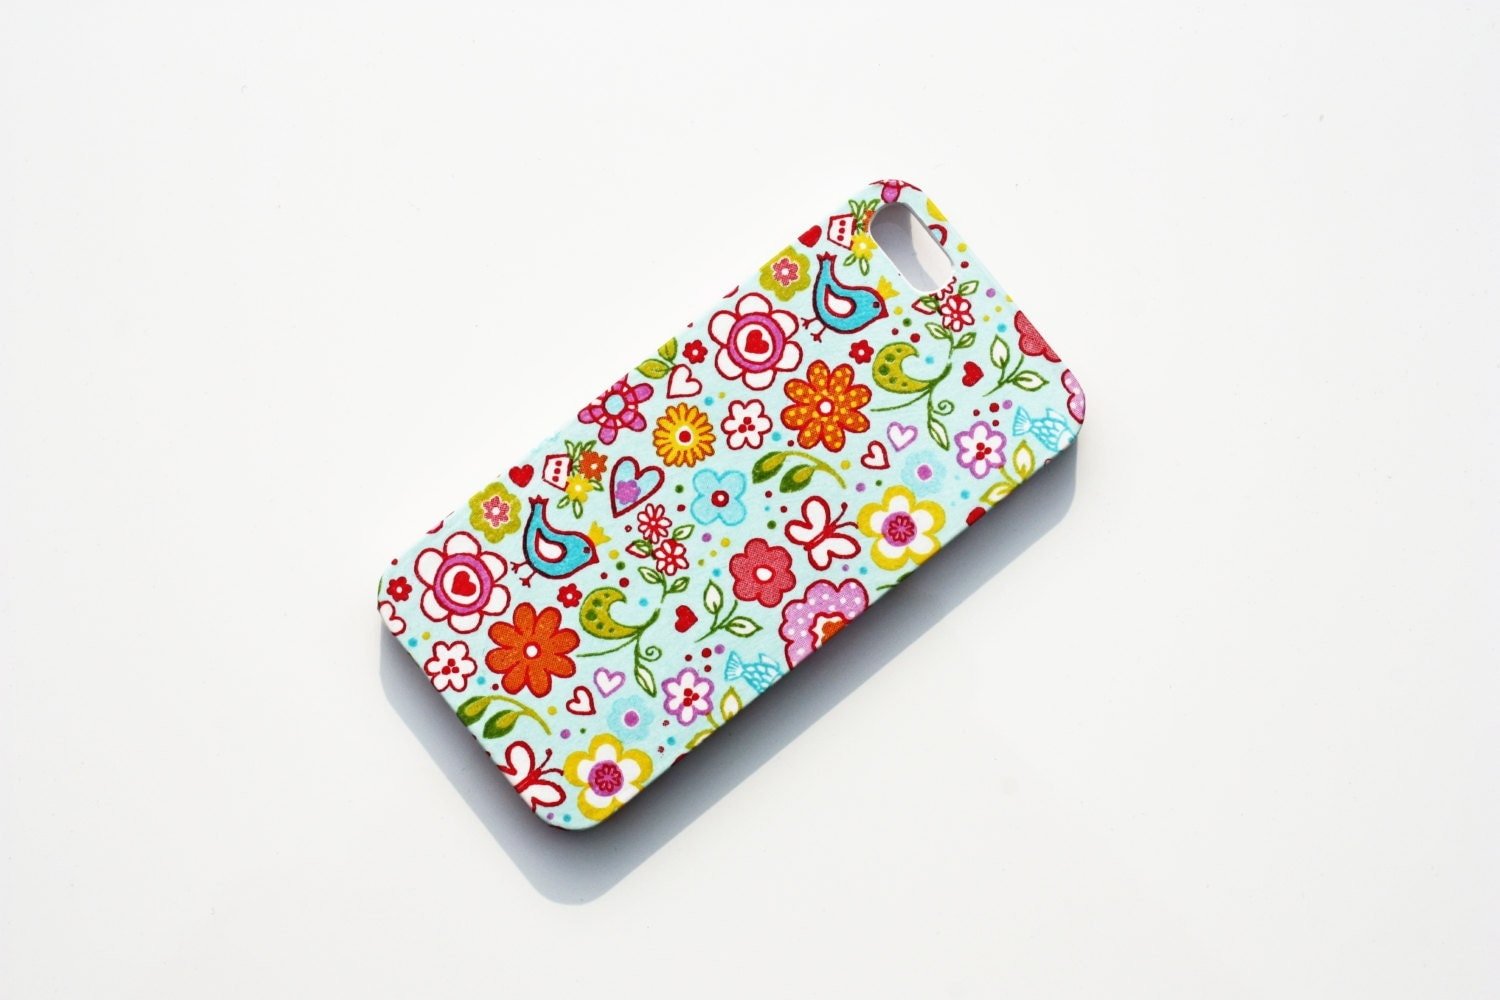 Sweet Garden iPhone 7 case iPhone 7 Plus iPhone SE iPhone 6  6s iPhone 6 Plus iphone 5s iPhone 5c iPhone 4 iPod classic iPod Touch 5